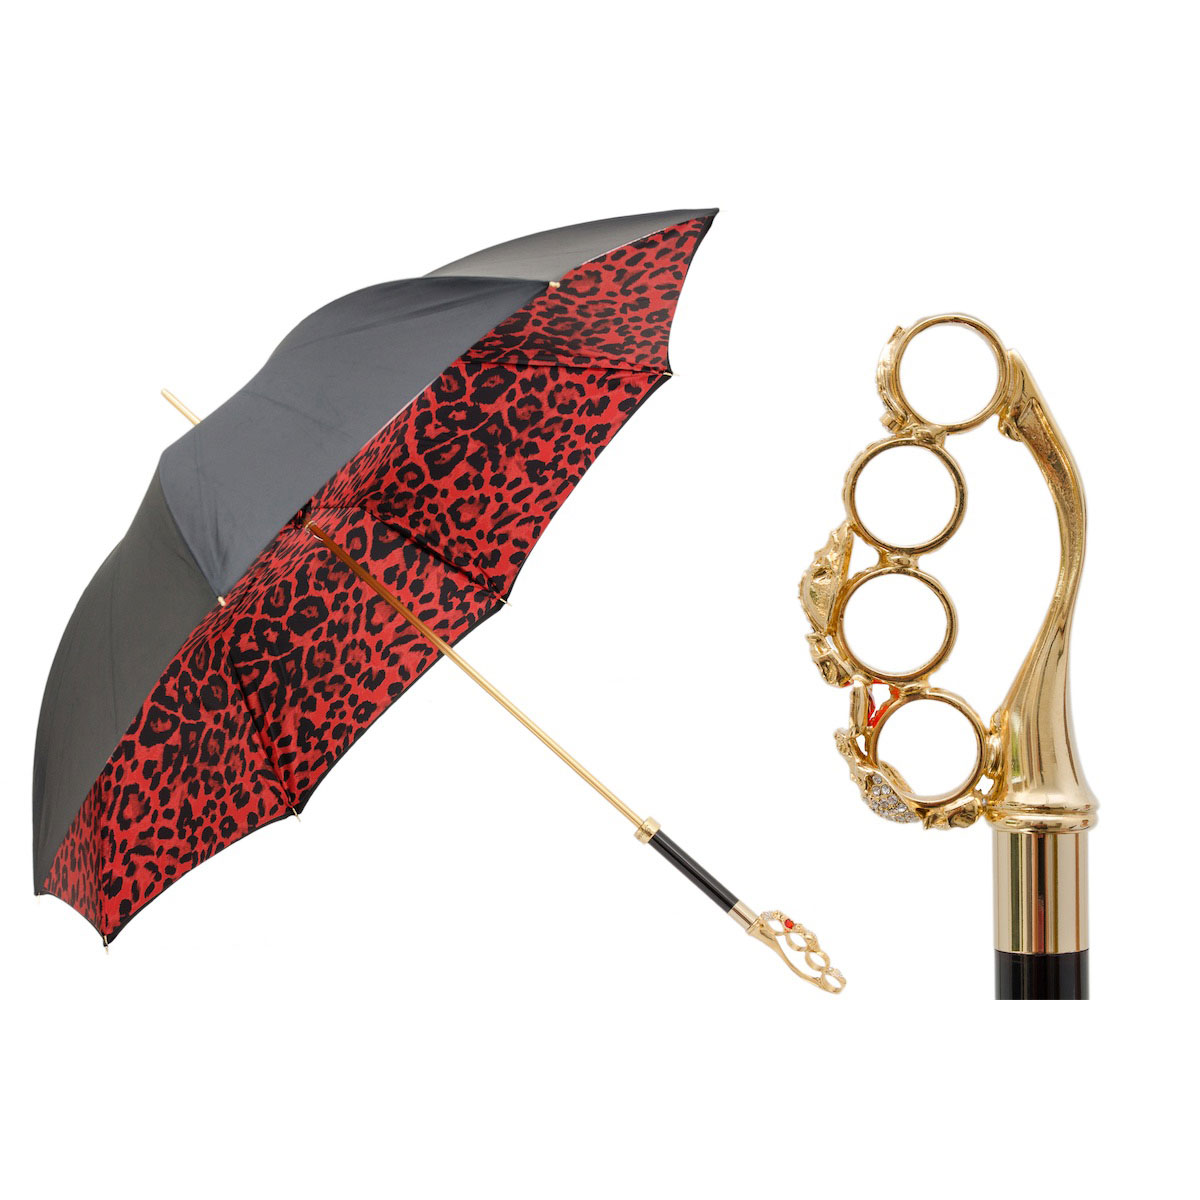 Pasotti Women's Luxury Knuckleduster Umbrella with Red Animal Print